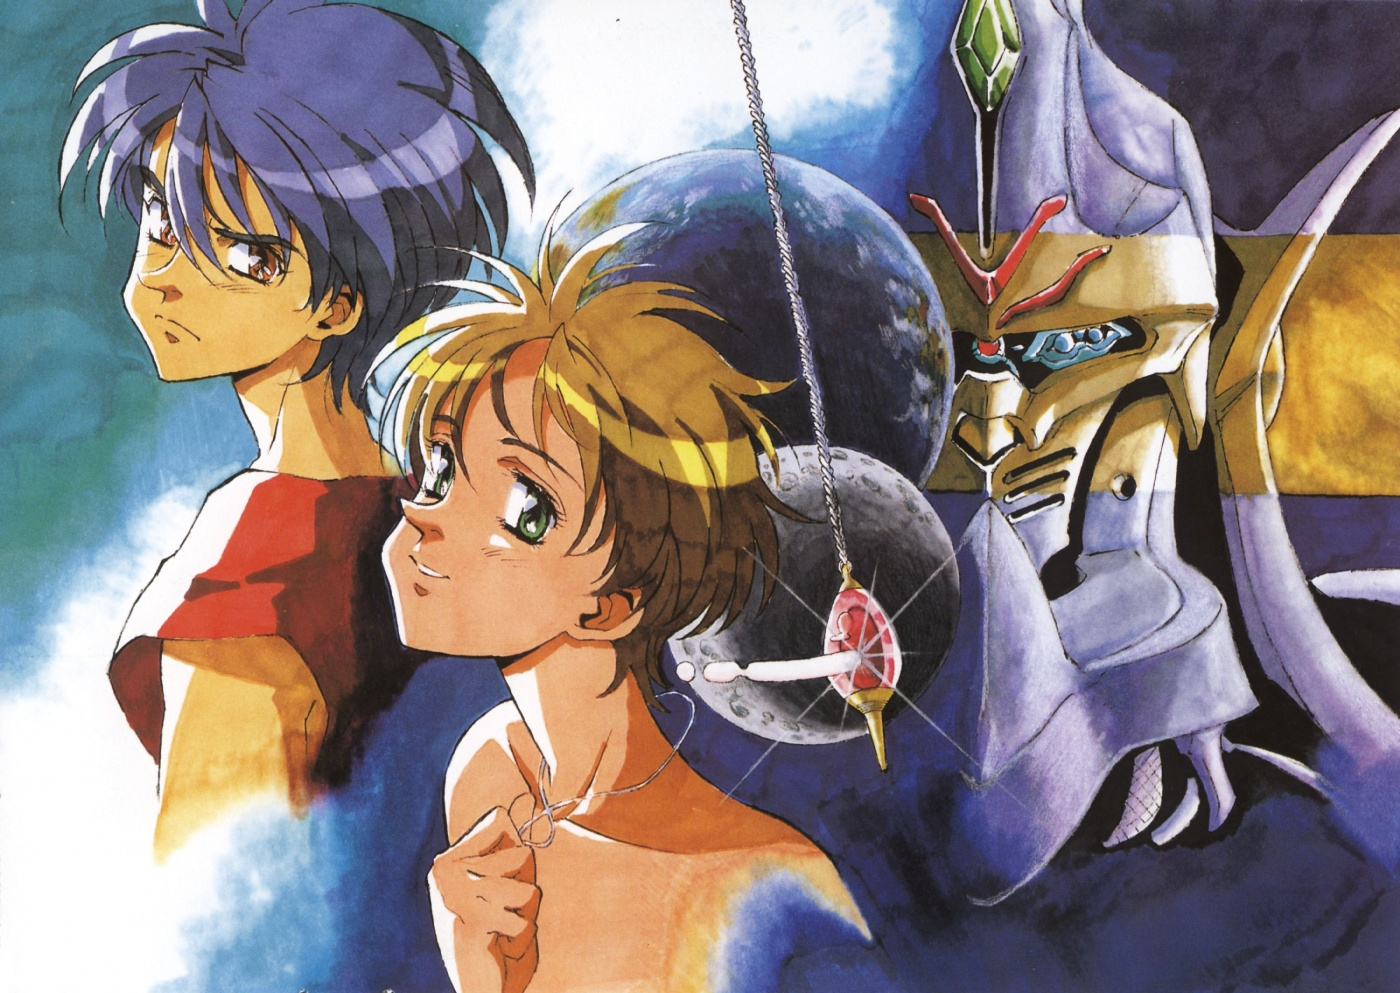 vision descaflowne vf hd